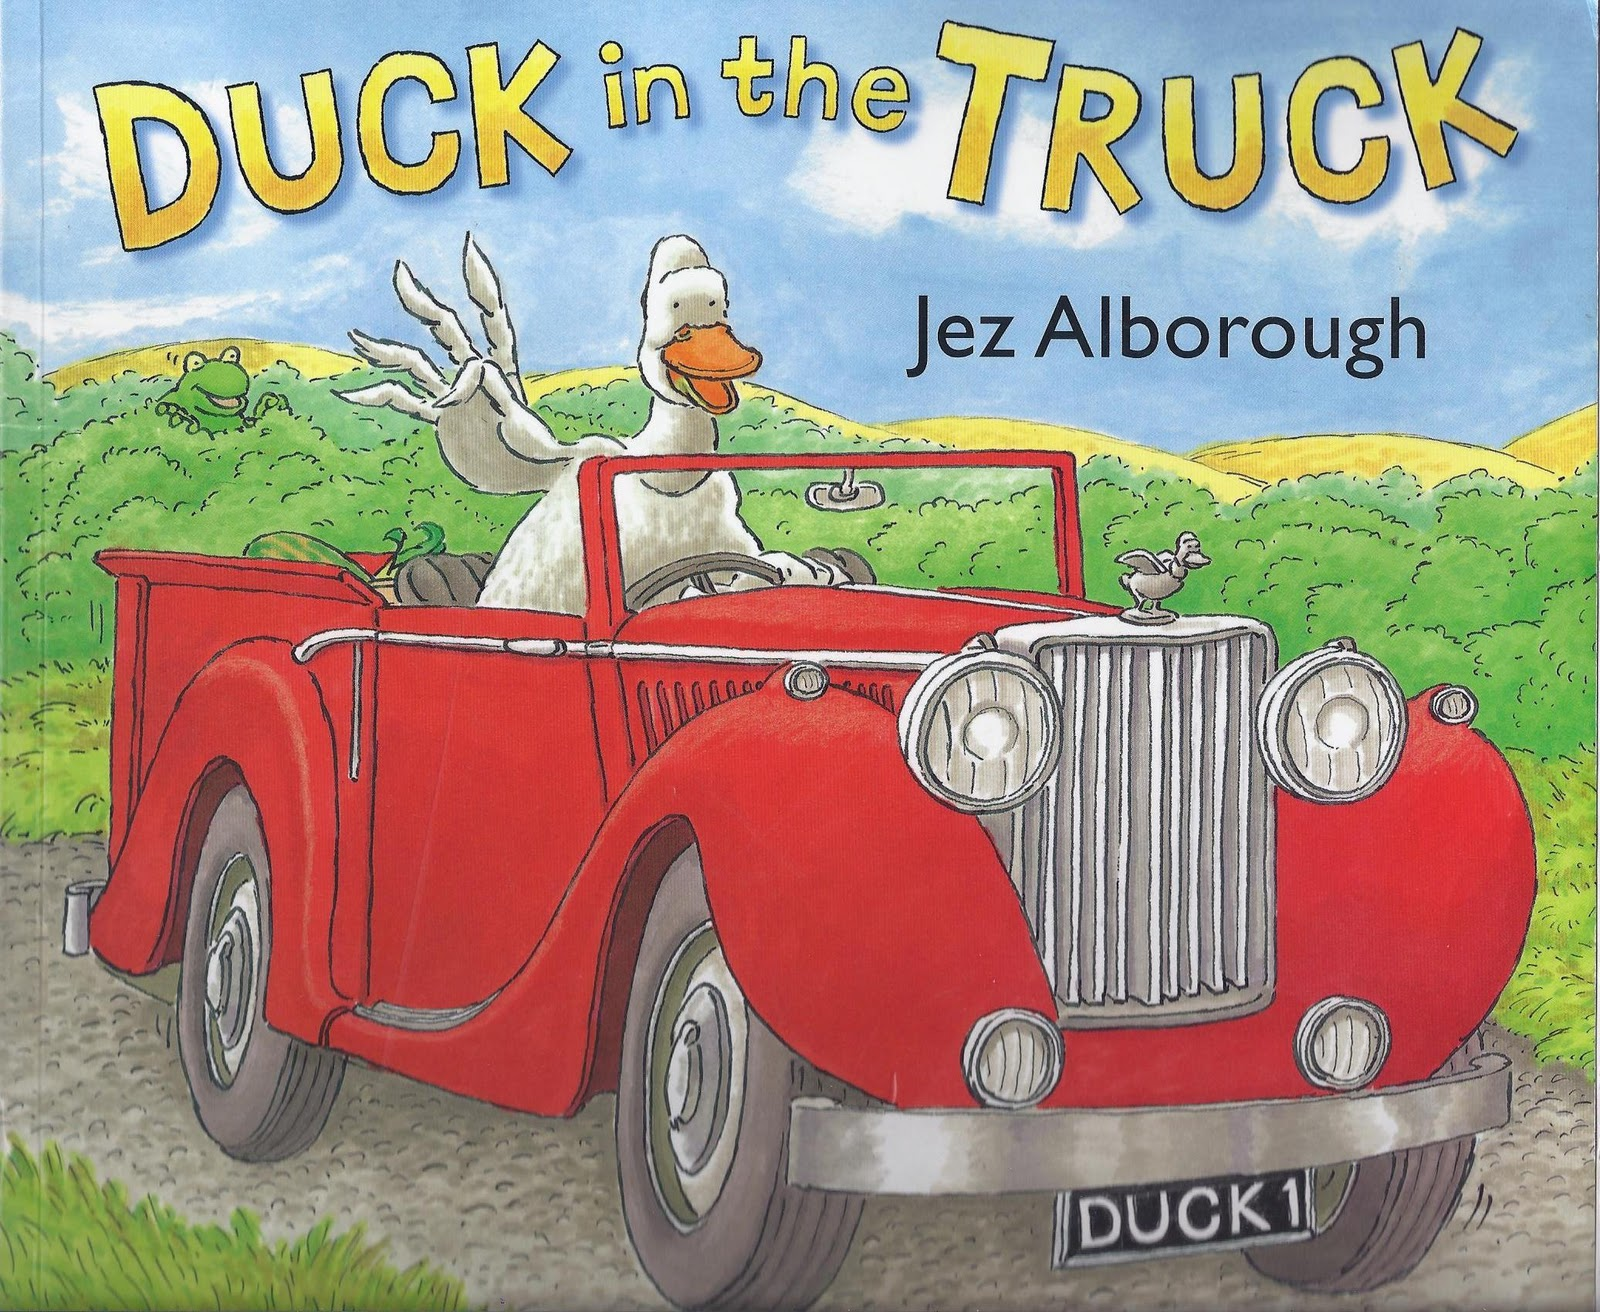 Excellent Kids' Books: Duck in the Truck by Jez Alborough